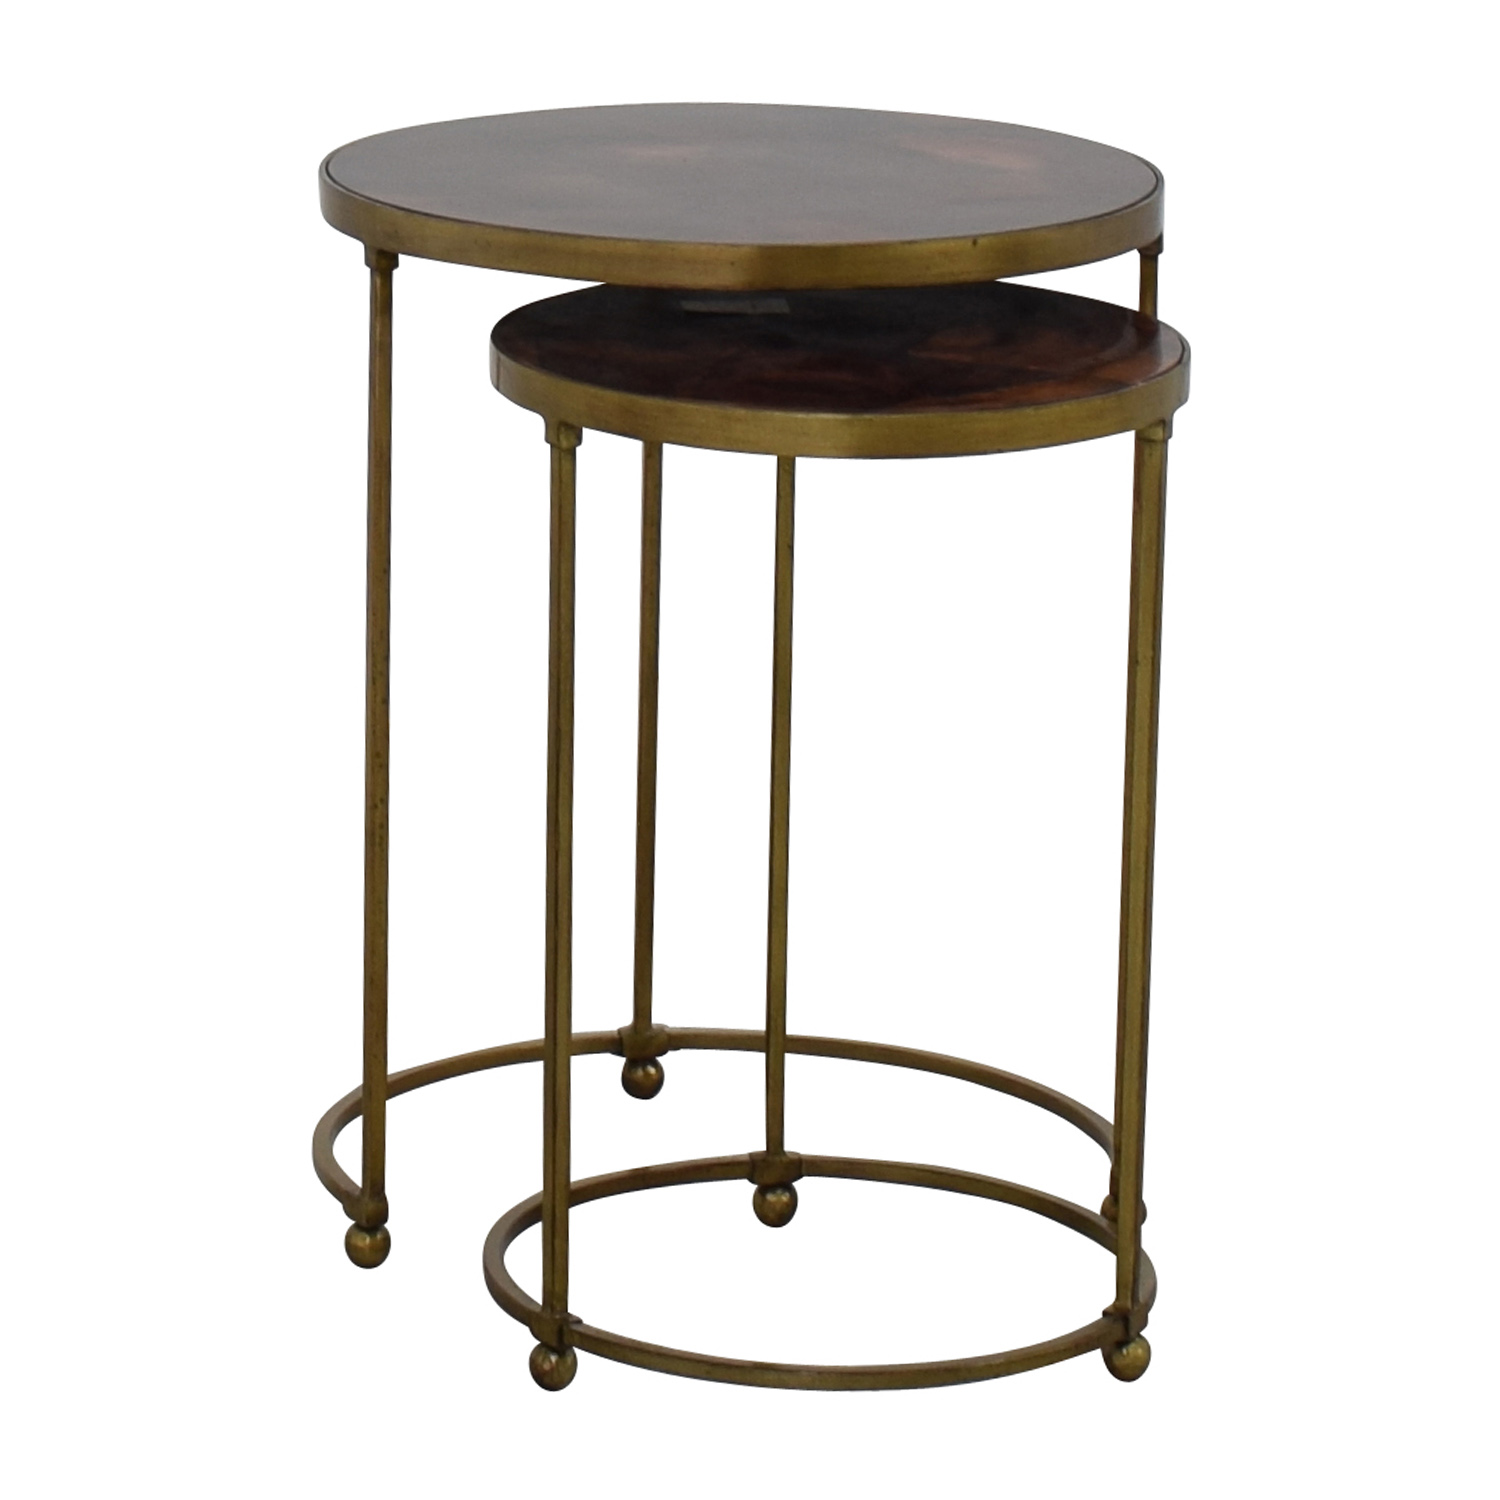 buy ABC Carpet and Home ABC Carpet & Home Nesting Round Bronze and Brass Accent Tables online